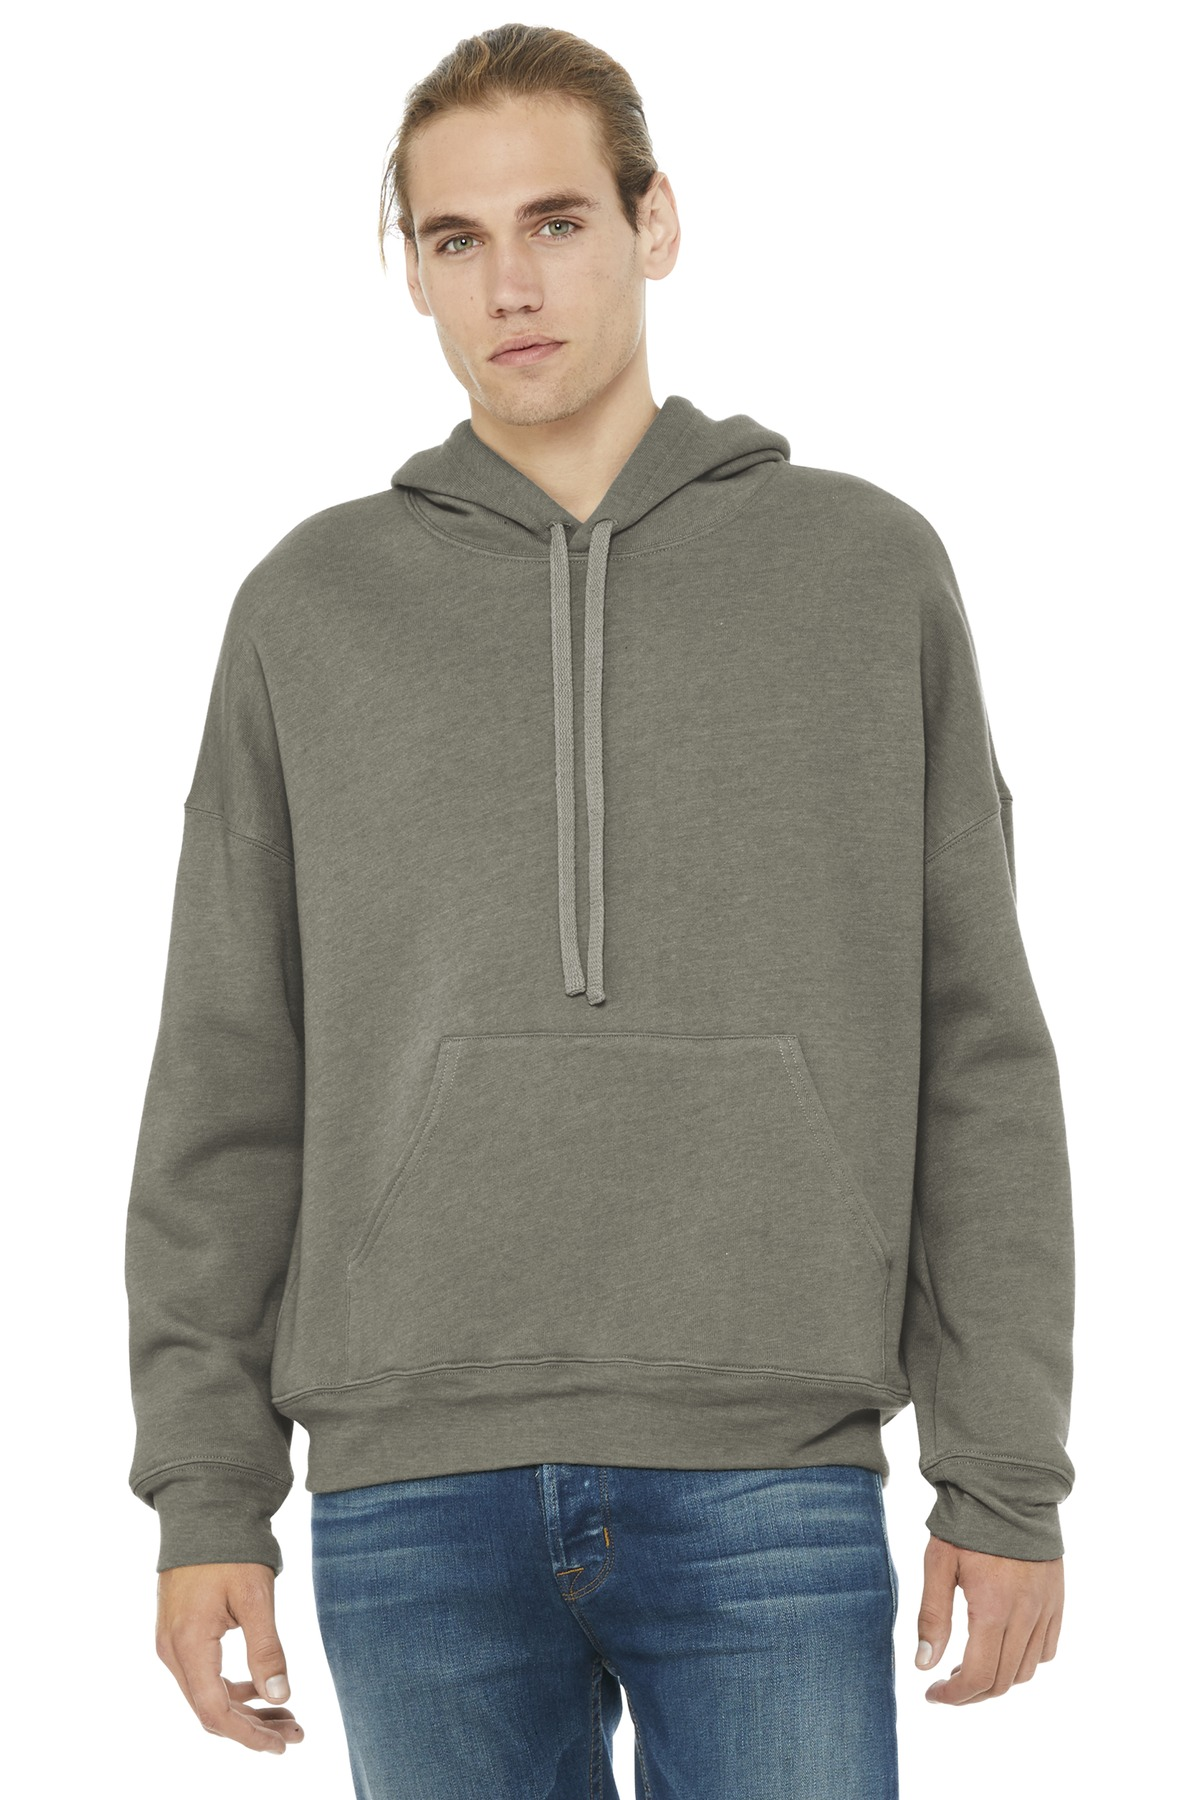 BELLA+CANVAS  ®  Unisex Sponge Fleece Pullover DTM Hoodie. BC3729 - Heather Stone